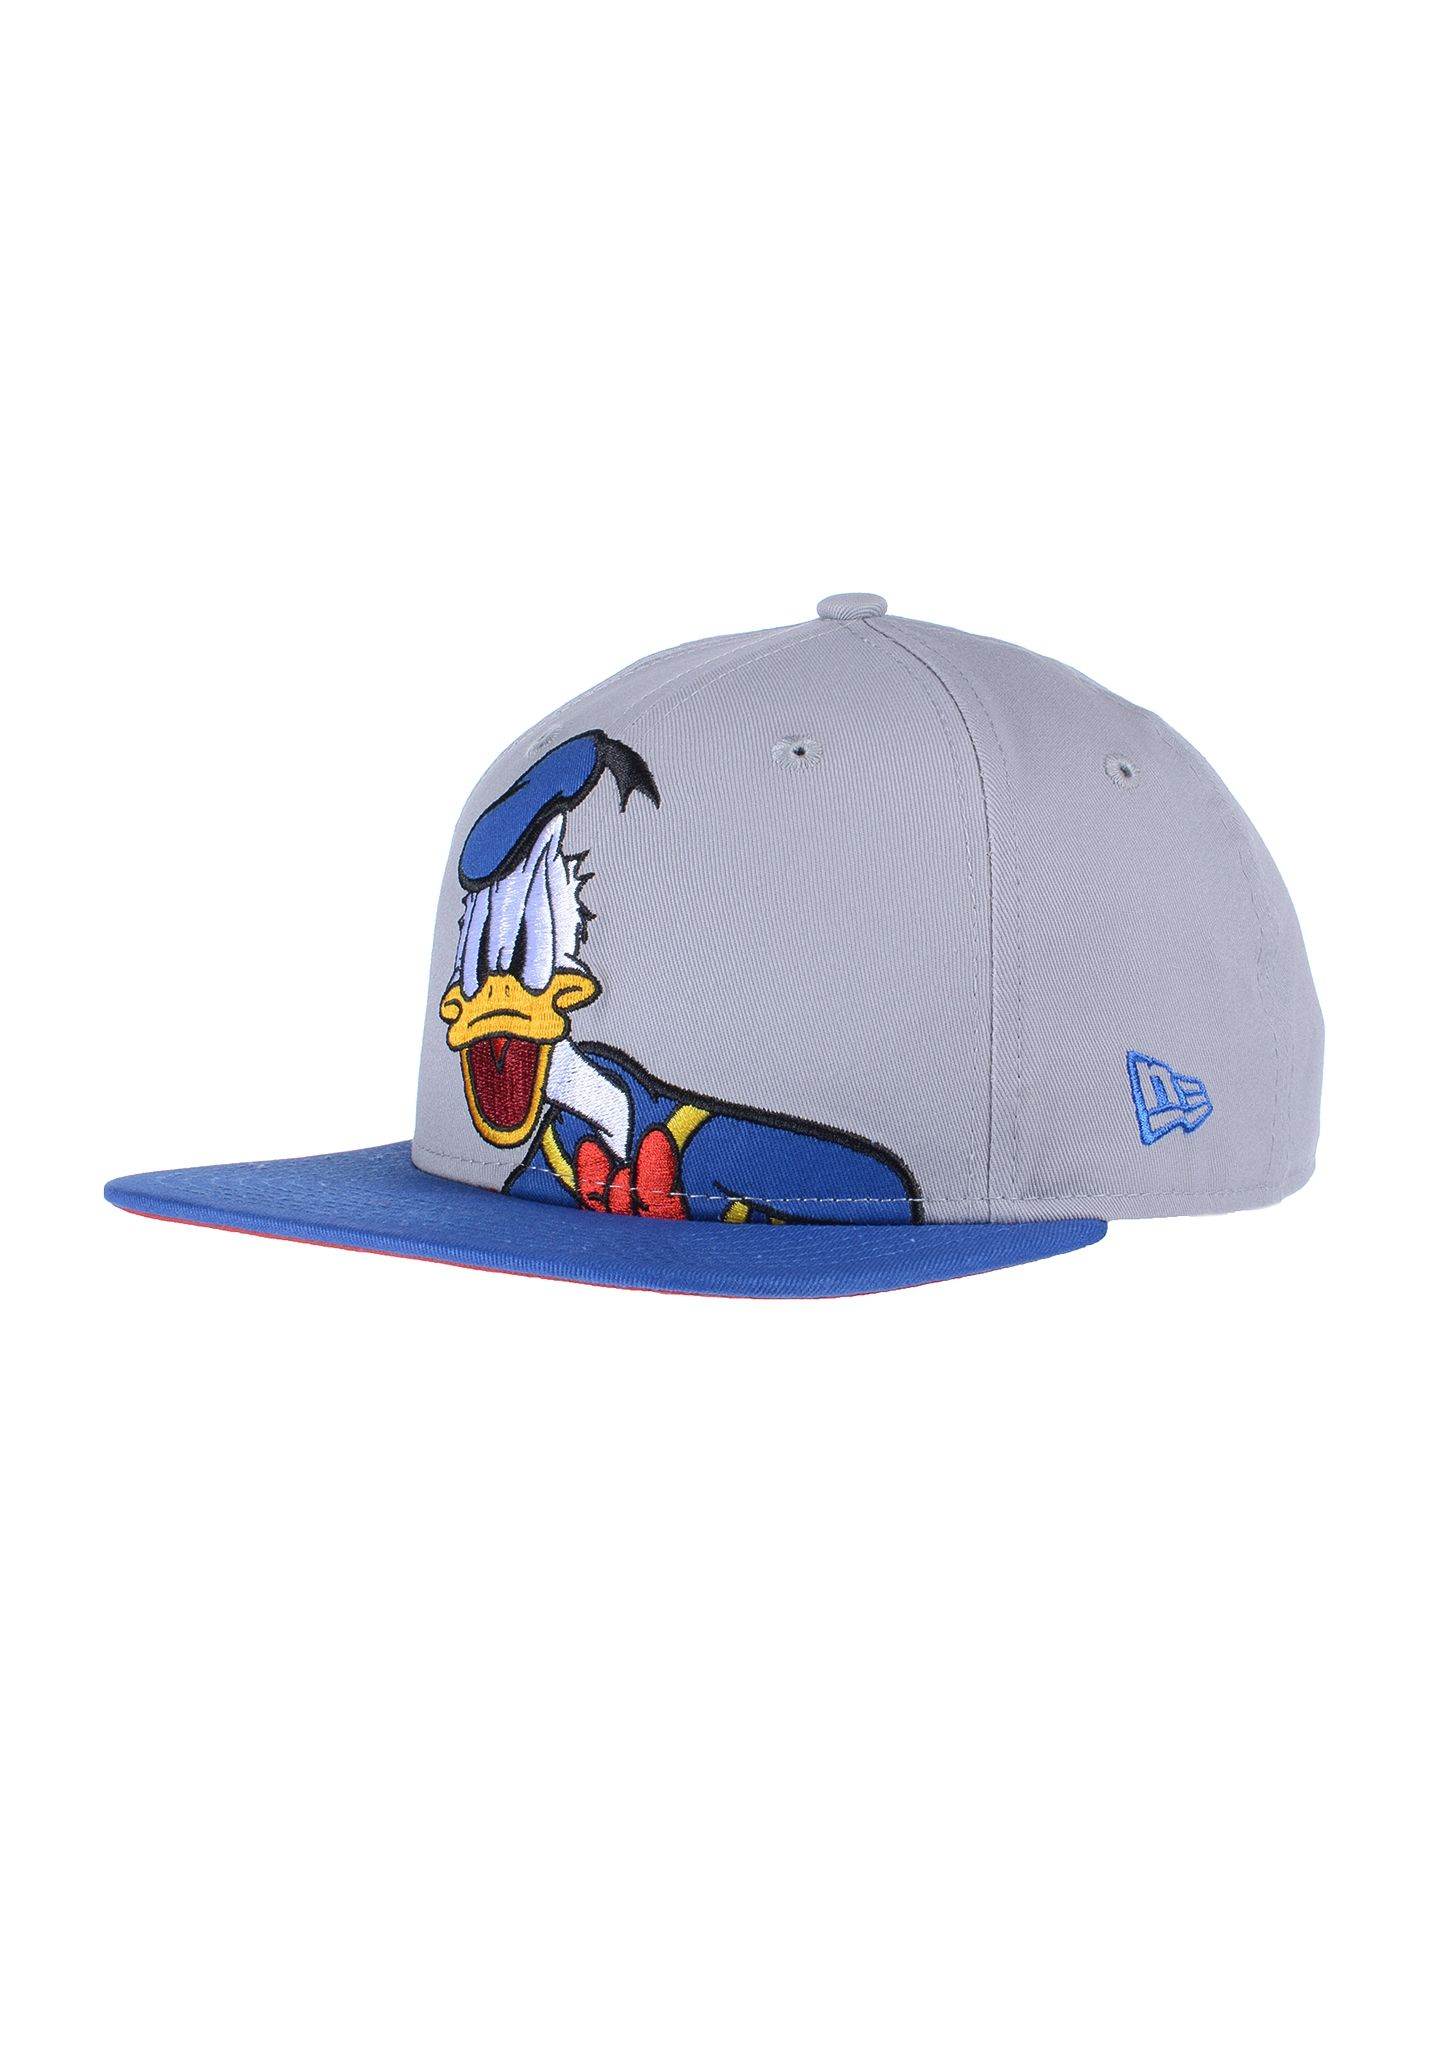 fa257d1028f New era disney over logo donald duck otc snapback cap schwarz planet sports  jpg 1430x2048 Donald